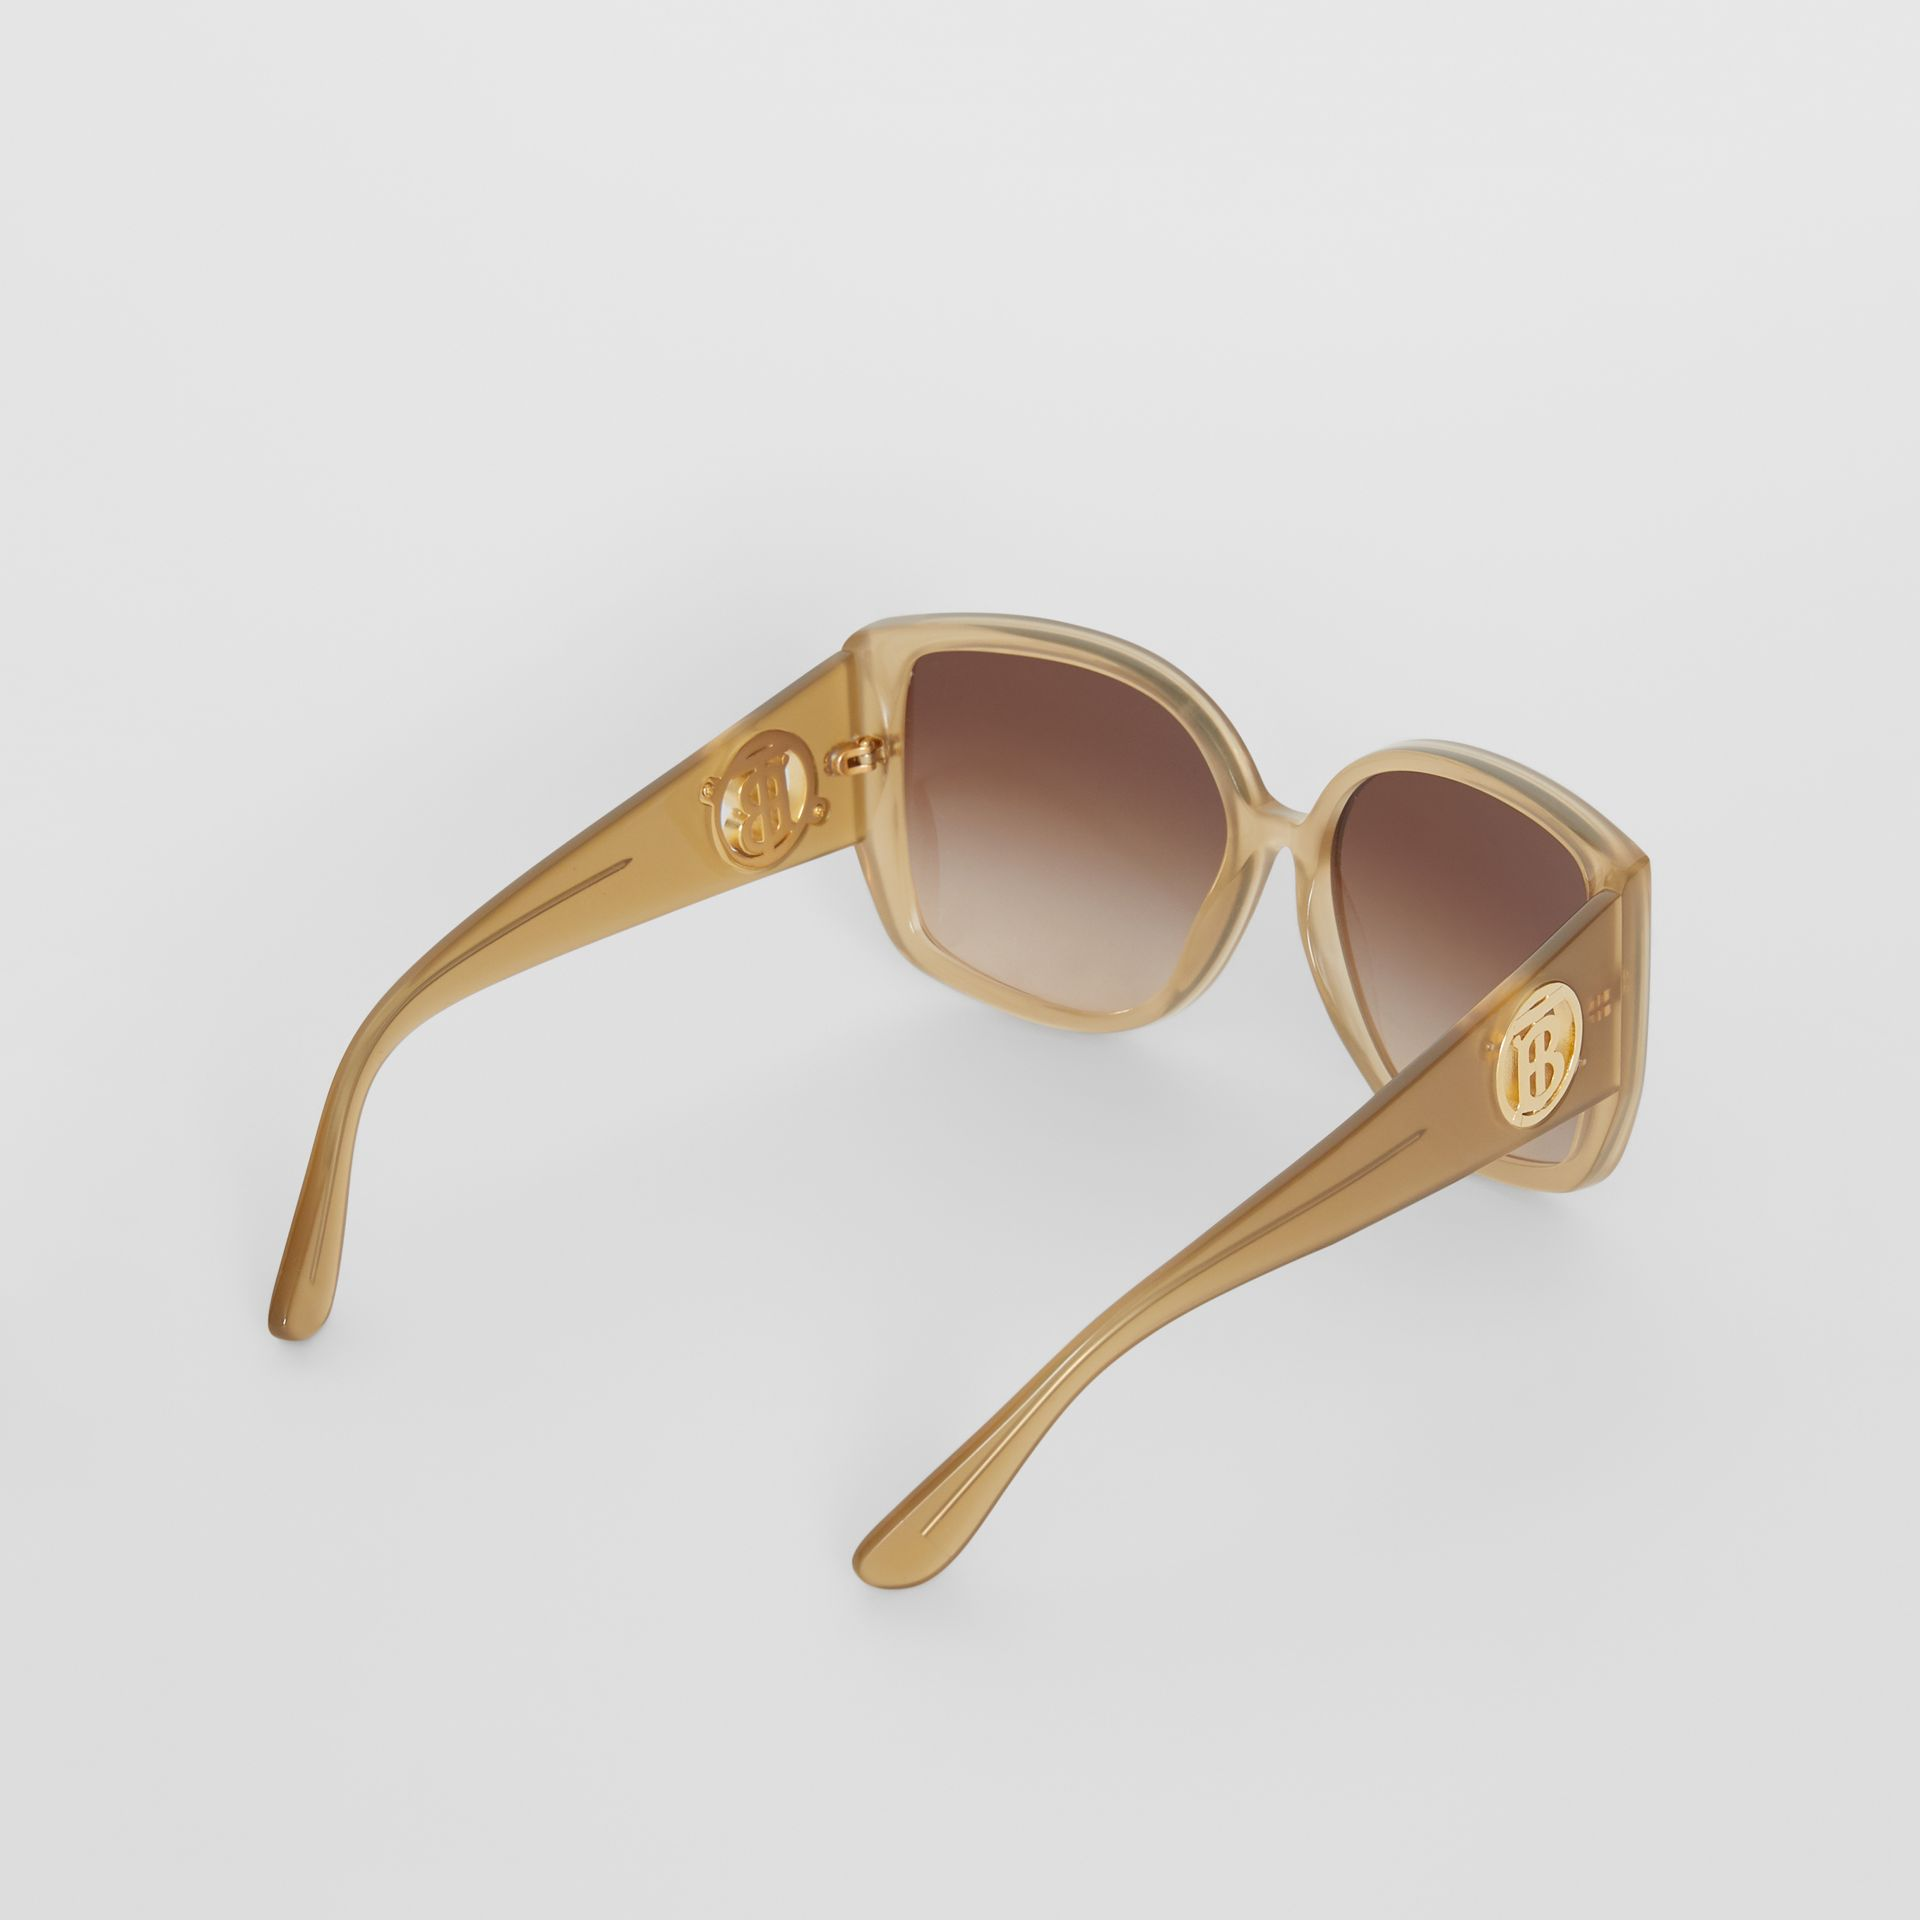 Oversized Butterfly Frame Sunglasses in Beige - Women | Burberry - gallery image 4